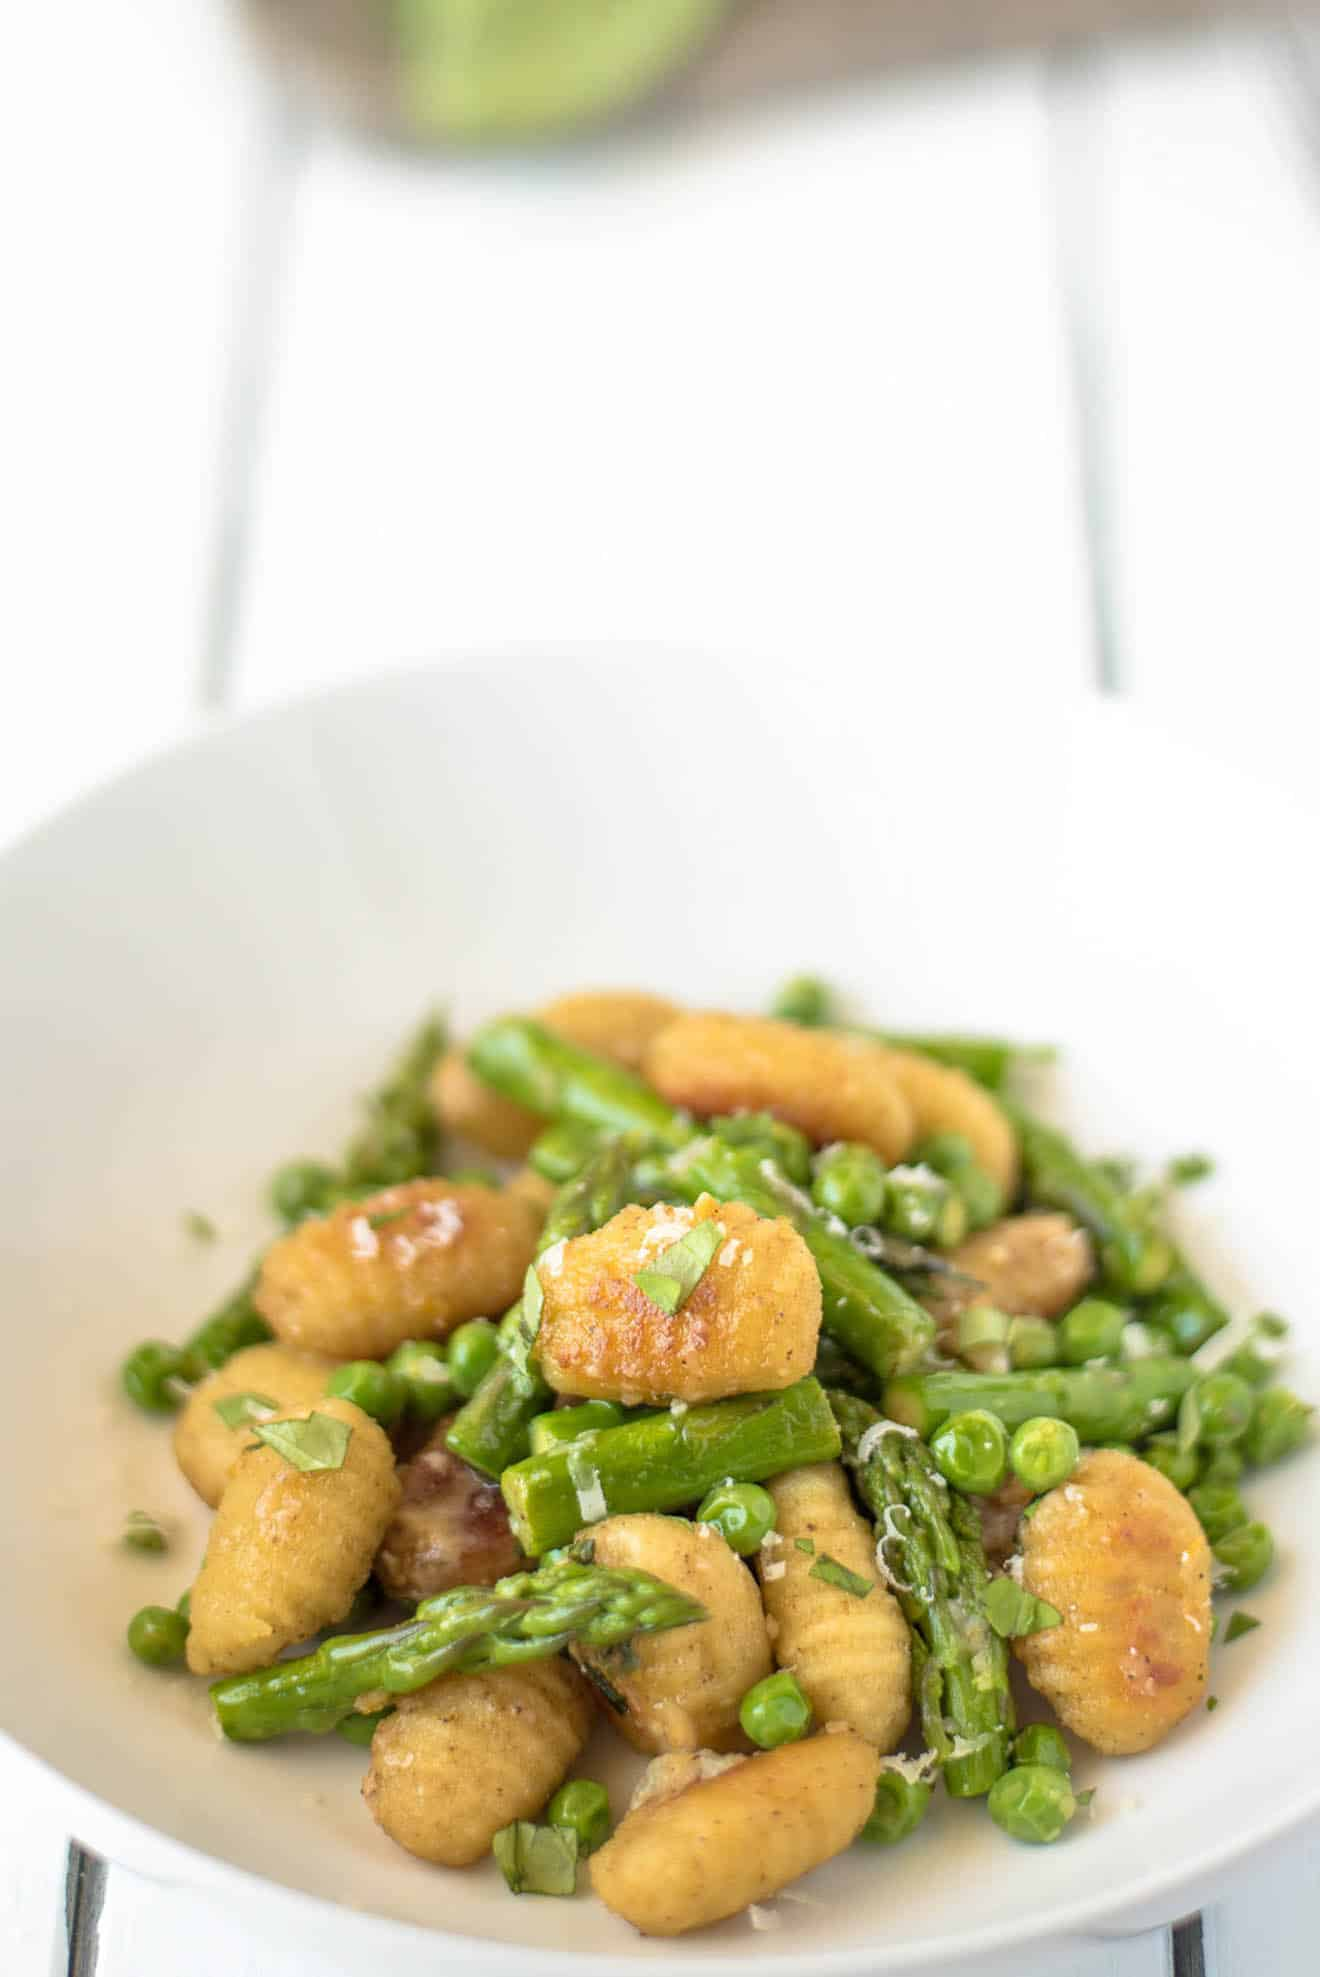 A closeup showing the brown and crispy gnocchi and vibrant green asparagus and peas